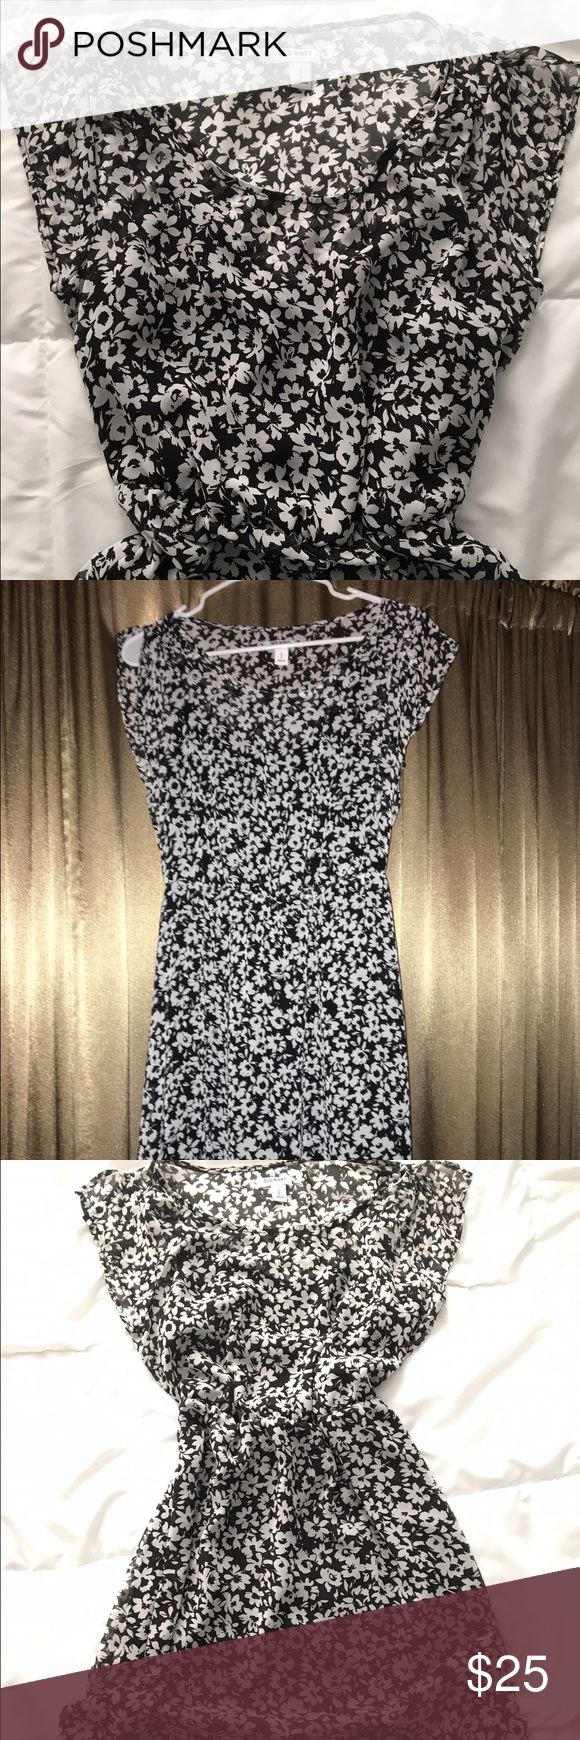 Old Navy Dress Old Navy black and white flower patterned dress. Size small. Old Navy Dresses